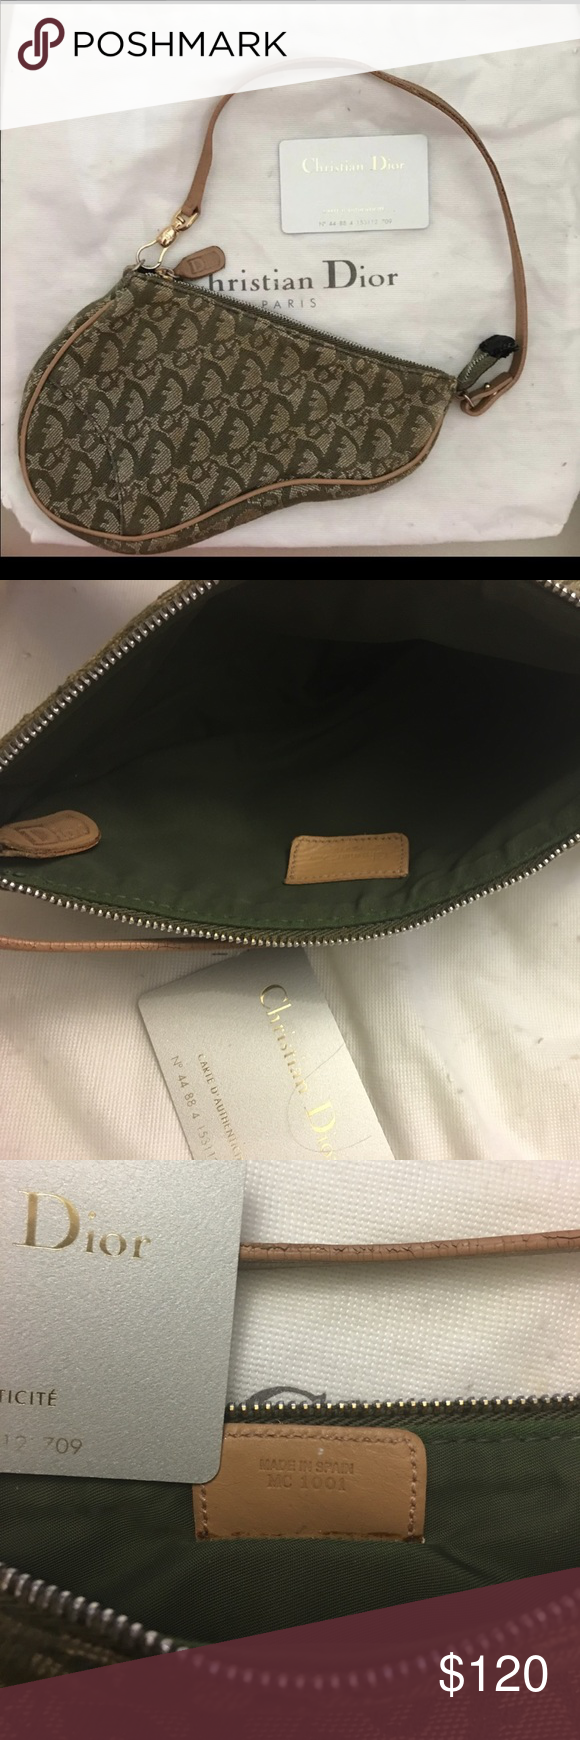 Authentic dior saddle bag authentic dior saddle bag in excellent png  580x1740 Authentic christian dior saddle f46a224f00807